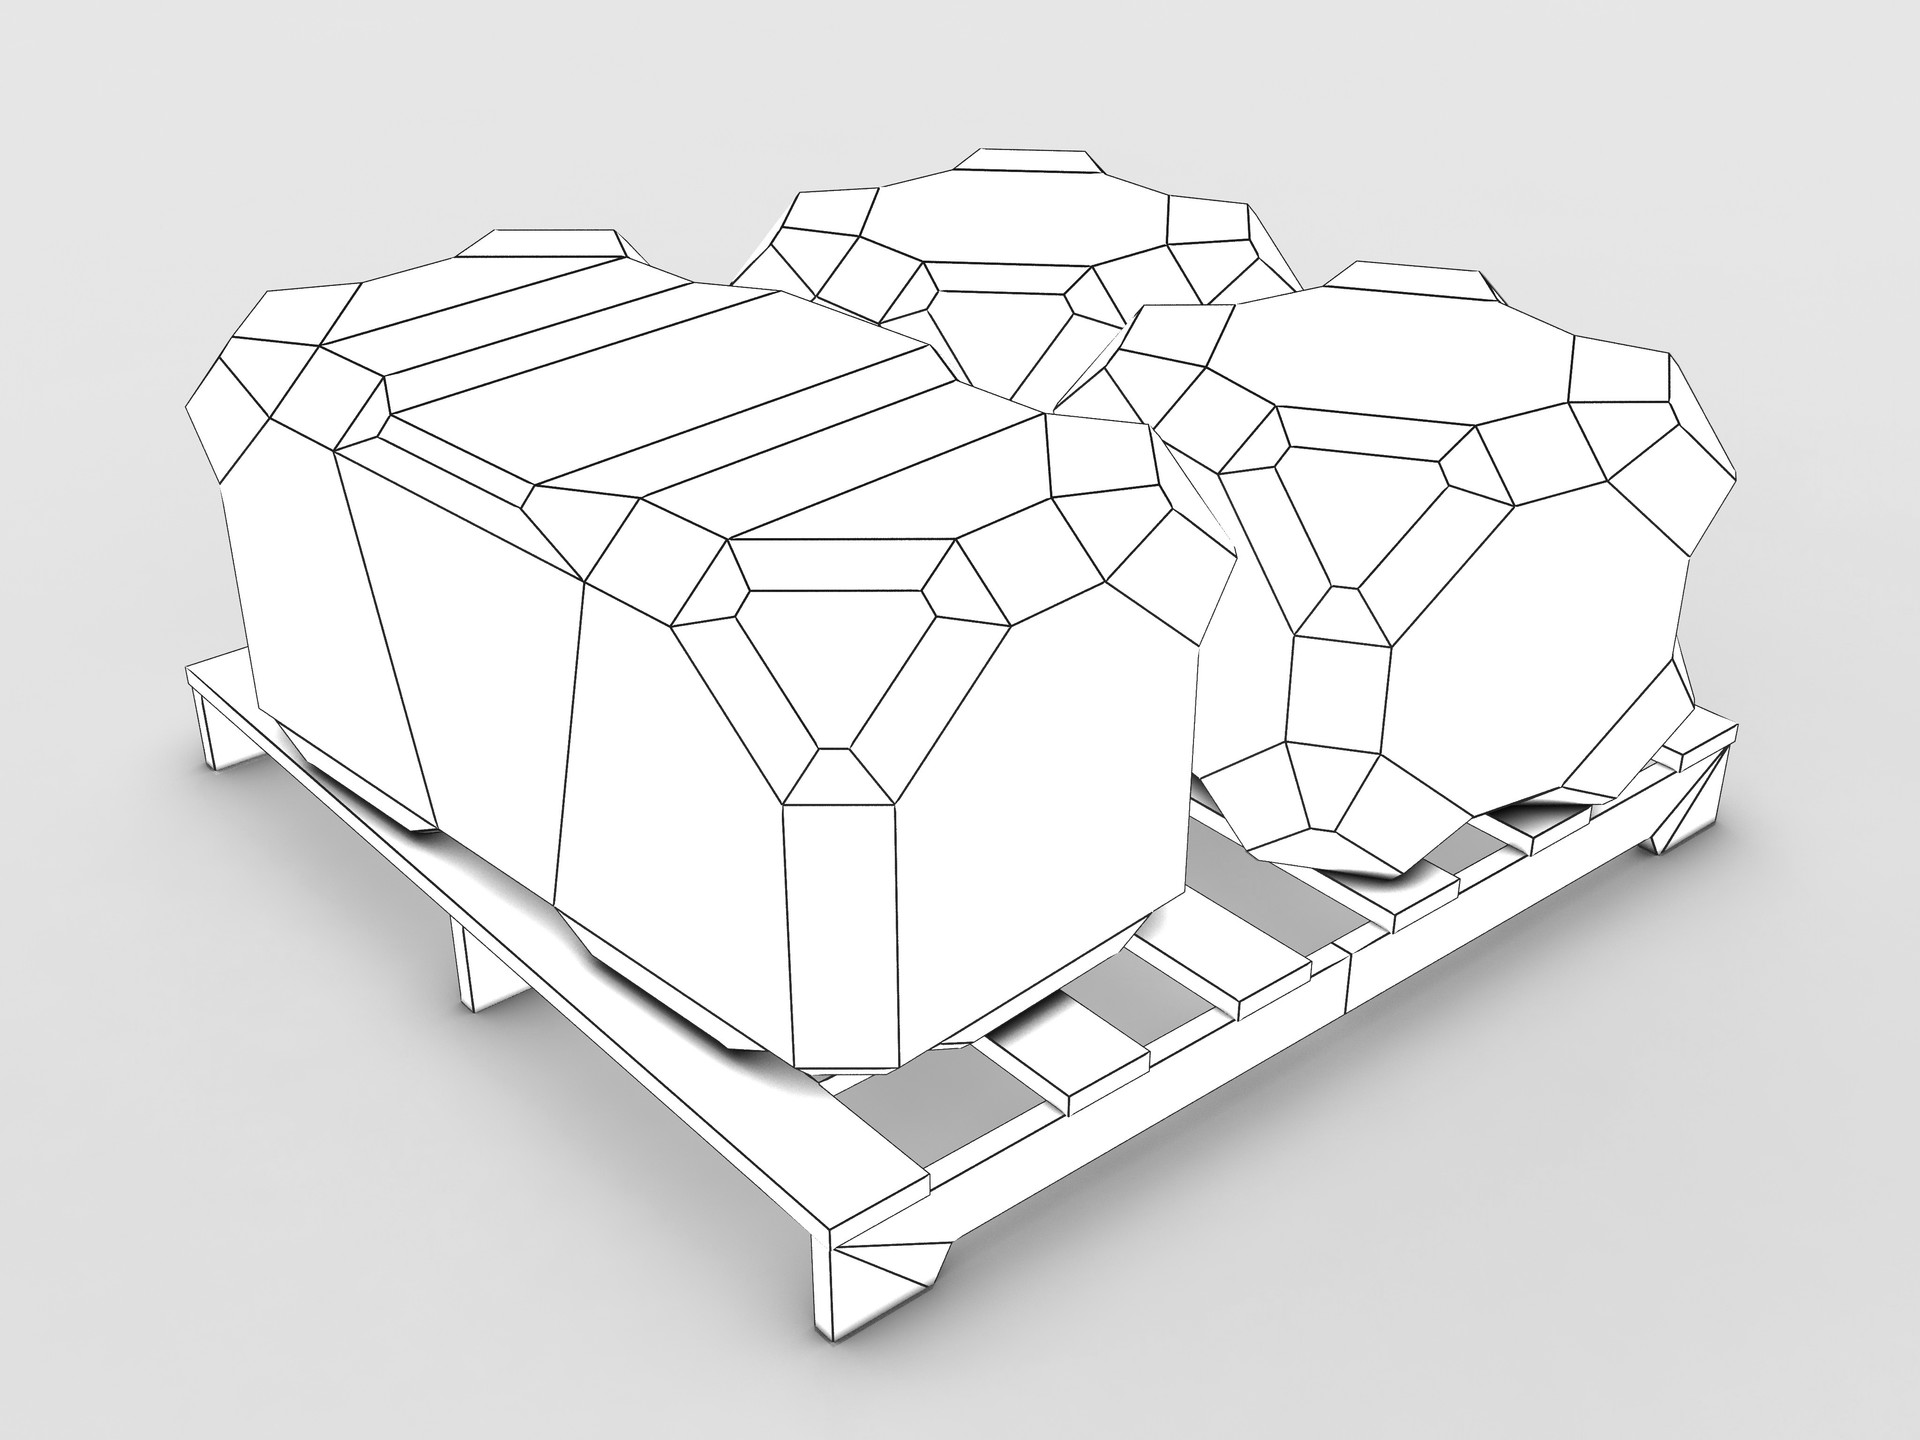 Sci-fi crate and pallet ambient occlusion and wire frame